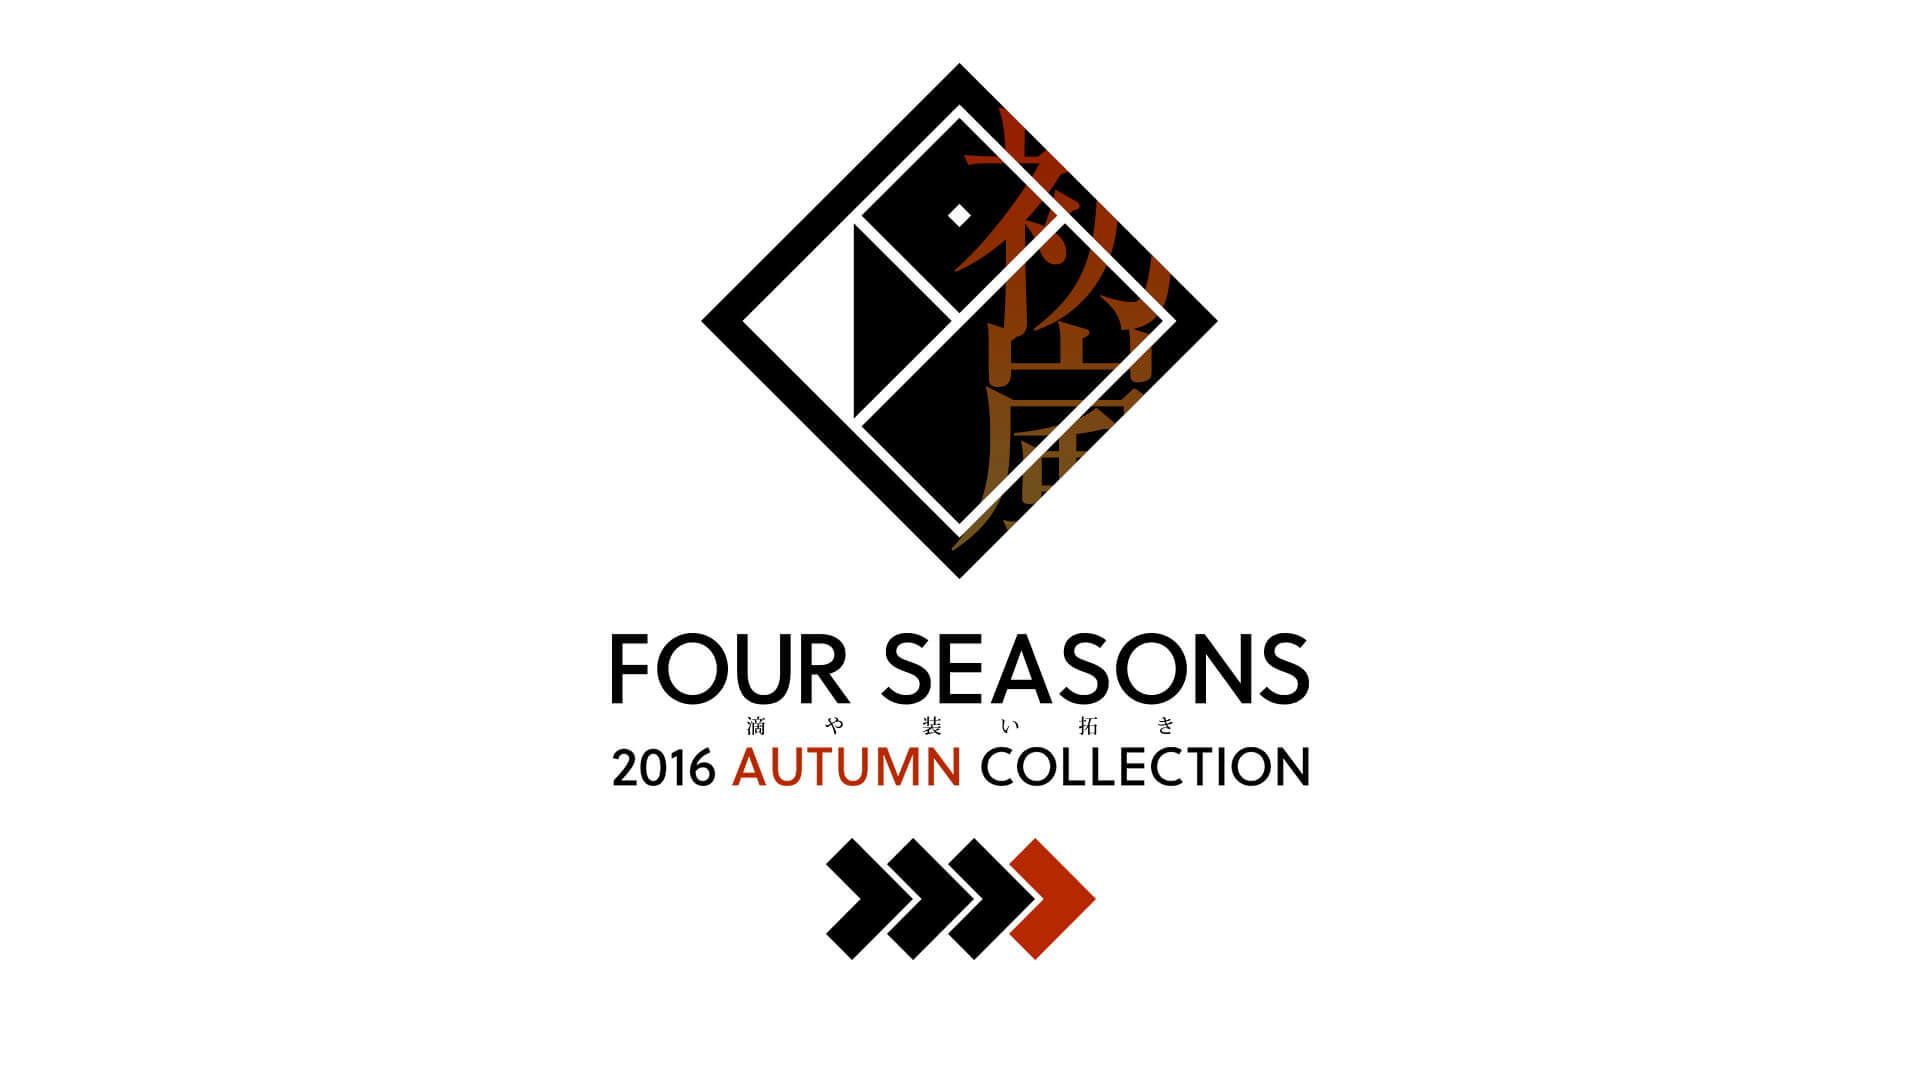 FOUR SEASONS 2016 AUTUMN COLLECTION